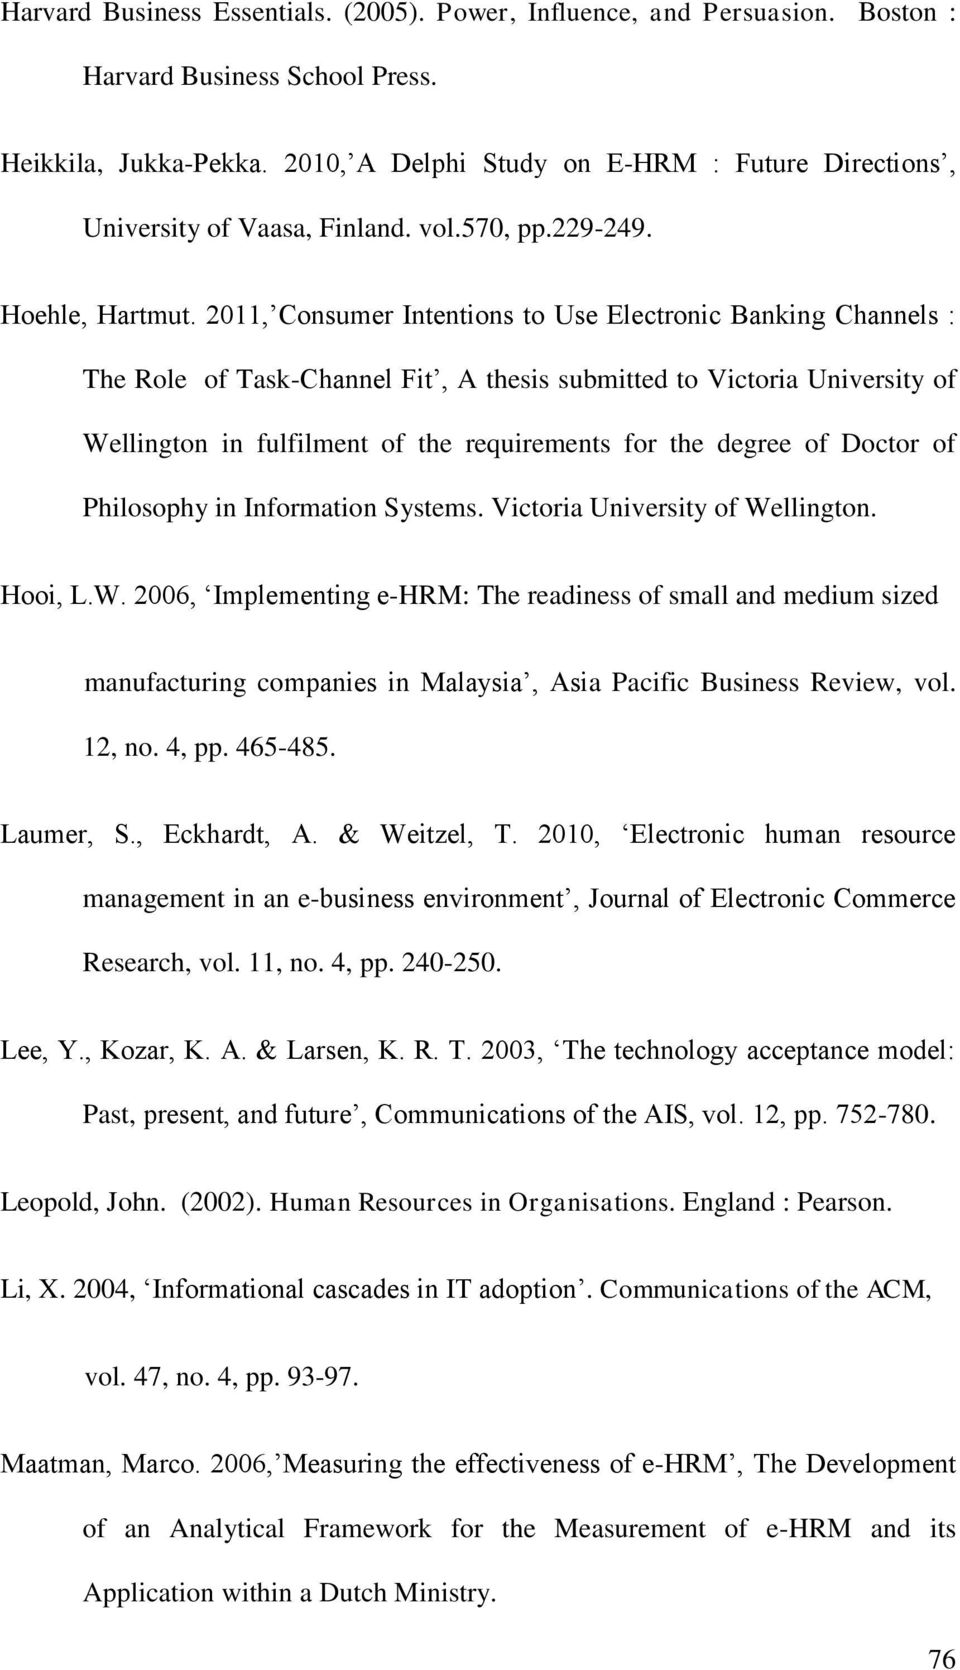 2011, Consumer Intentions to Use Electronic Banking Channels : The Role of Task-Channel Fit, A thesis submitted to Victoria University of Wellington in fulfilment of the requirements for the degree